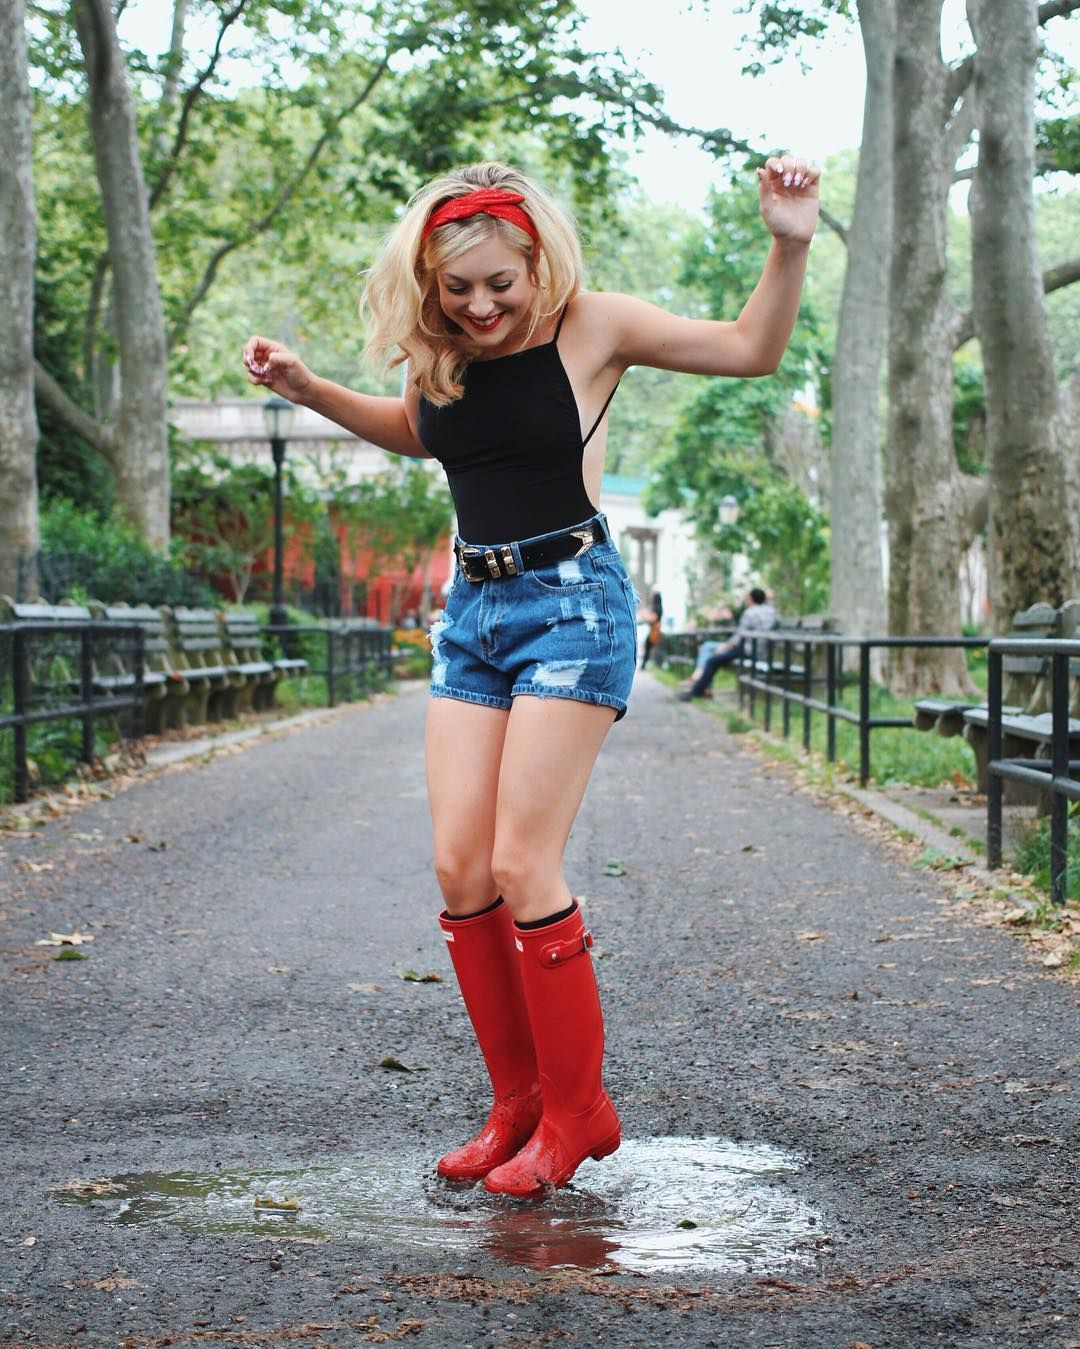 Rainy Day In London Has Me Thinking About Rainy Brooklyn Puddle Stomps Rainy Summer Outfits Summer Day Outfits Rainy Spring Outfit